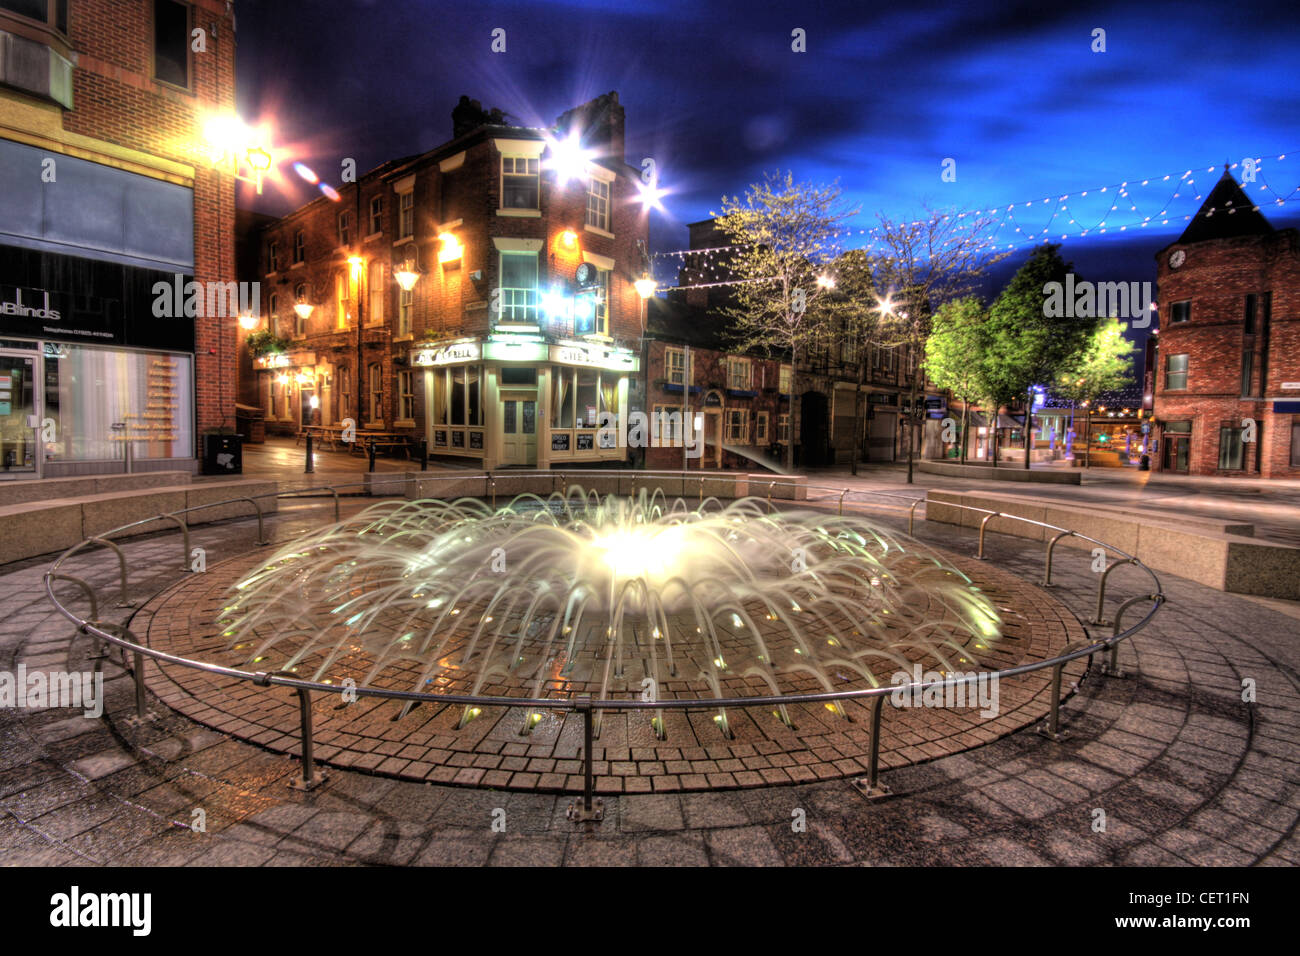 Bridge,St,/,Hatters,Row,Fountain,Opposite,The,Blue,Bell,Pub,Horse Market Street,Warrington at dusk,Cheshire,England,WA1,1TS,WA11TS,gotonysmith,dusk,night,shot,nightshot,long,exposure,longexposure,town,centre,tourist,tourism,center,shopping,st,street,thriving,local,urban,art,english,england,British NW north west england visit,gotonysmith,Warringtonian,Buy Pictures of,Buy Images Of